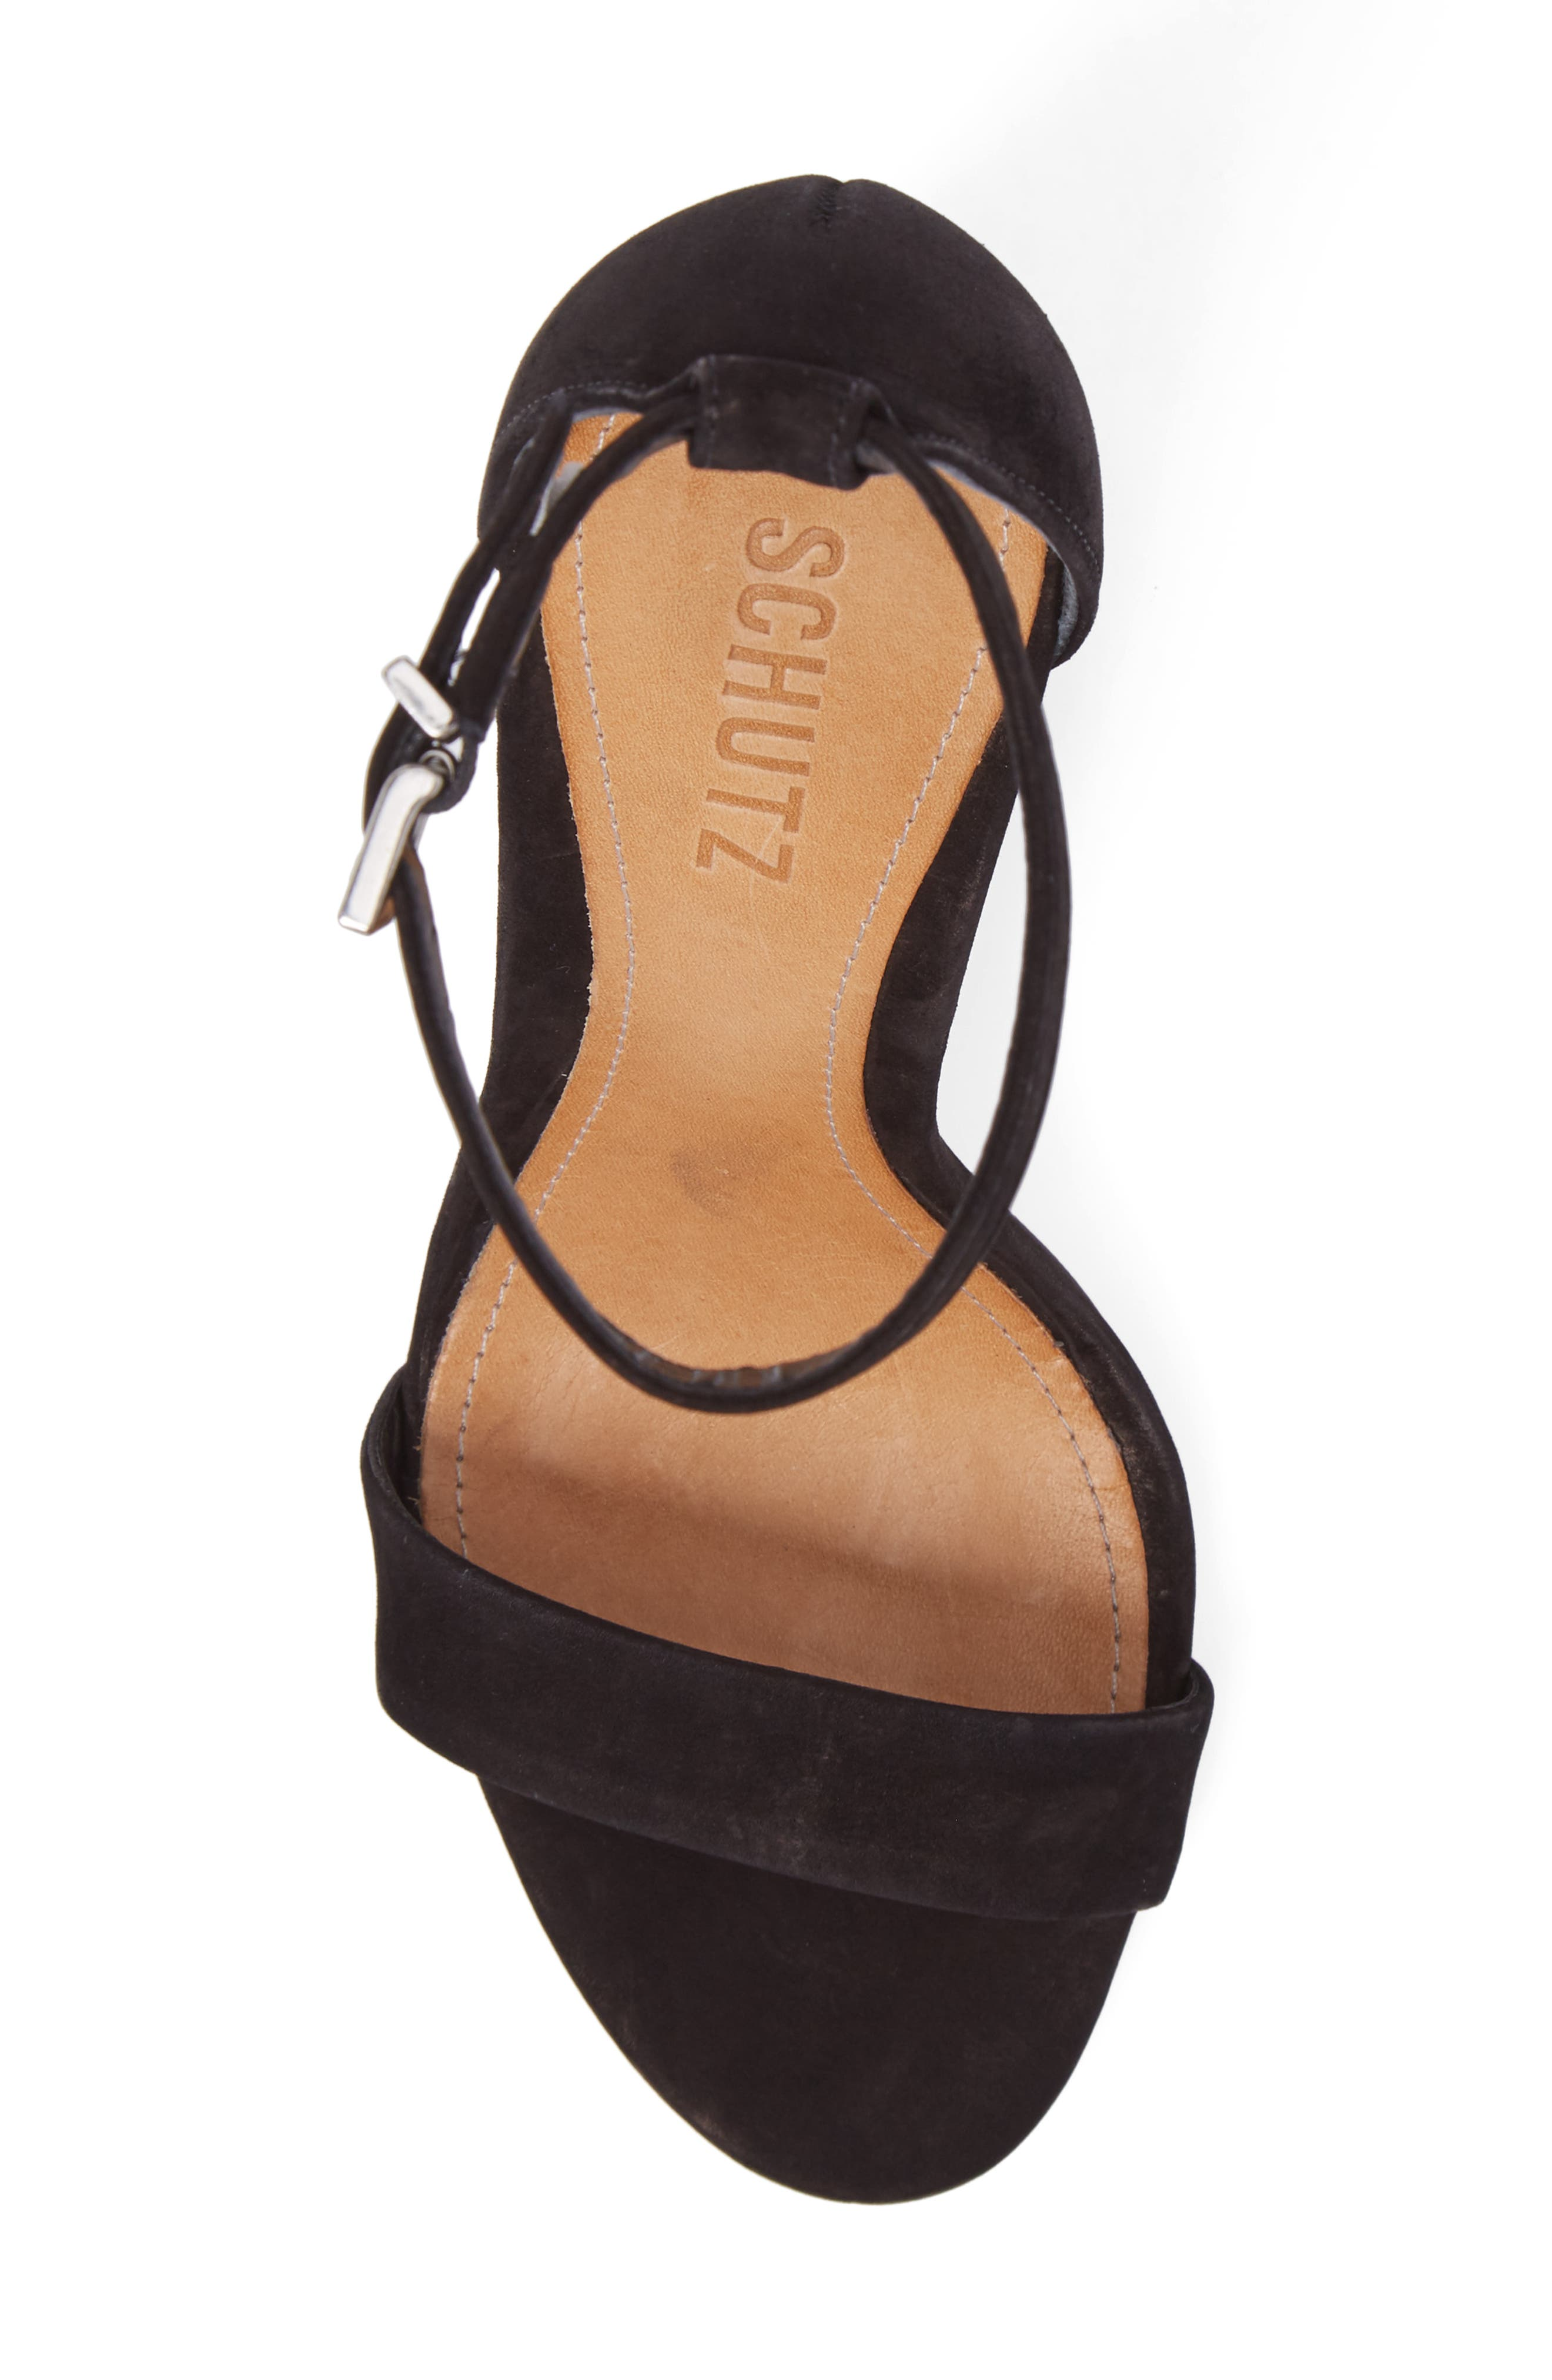 Enida Strappy Sandal,                             Alternate thumbnail 5, color,                             Black Nubuck Leather